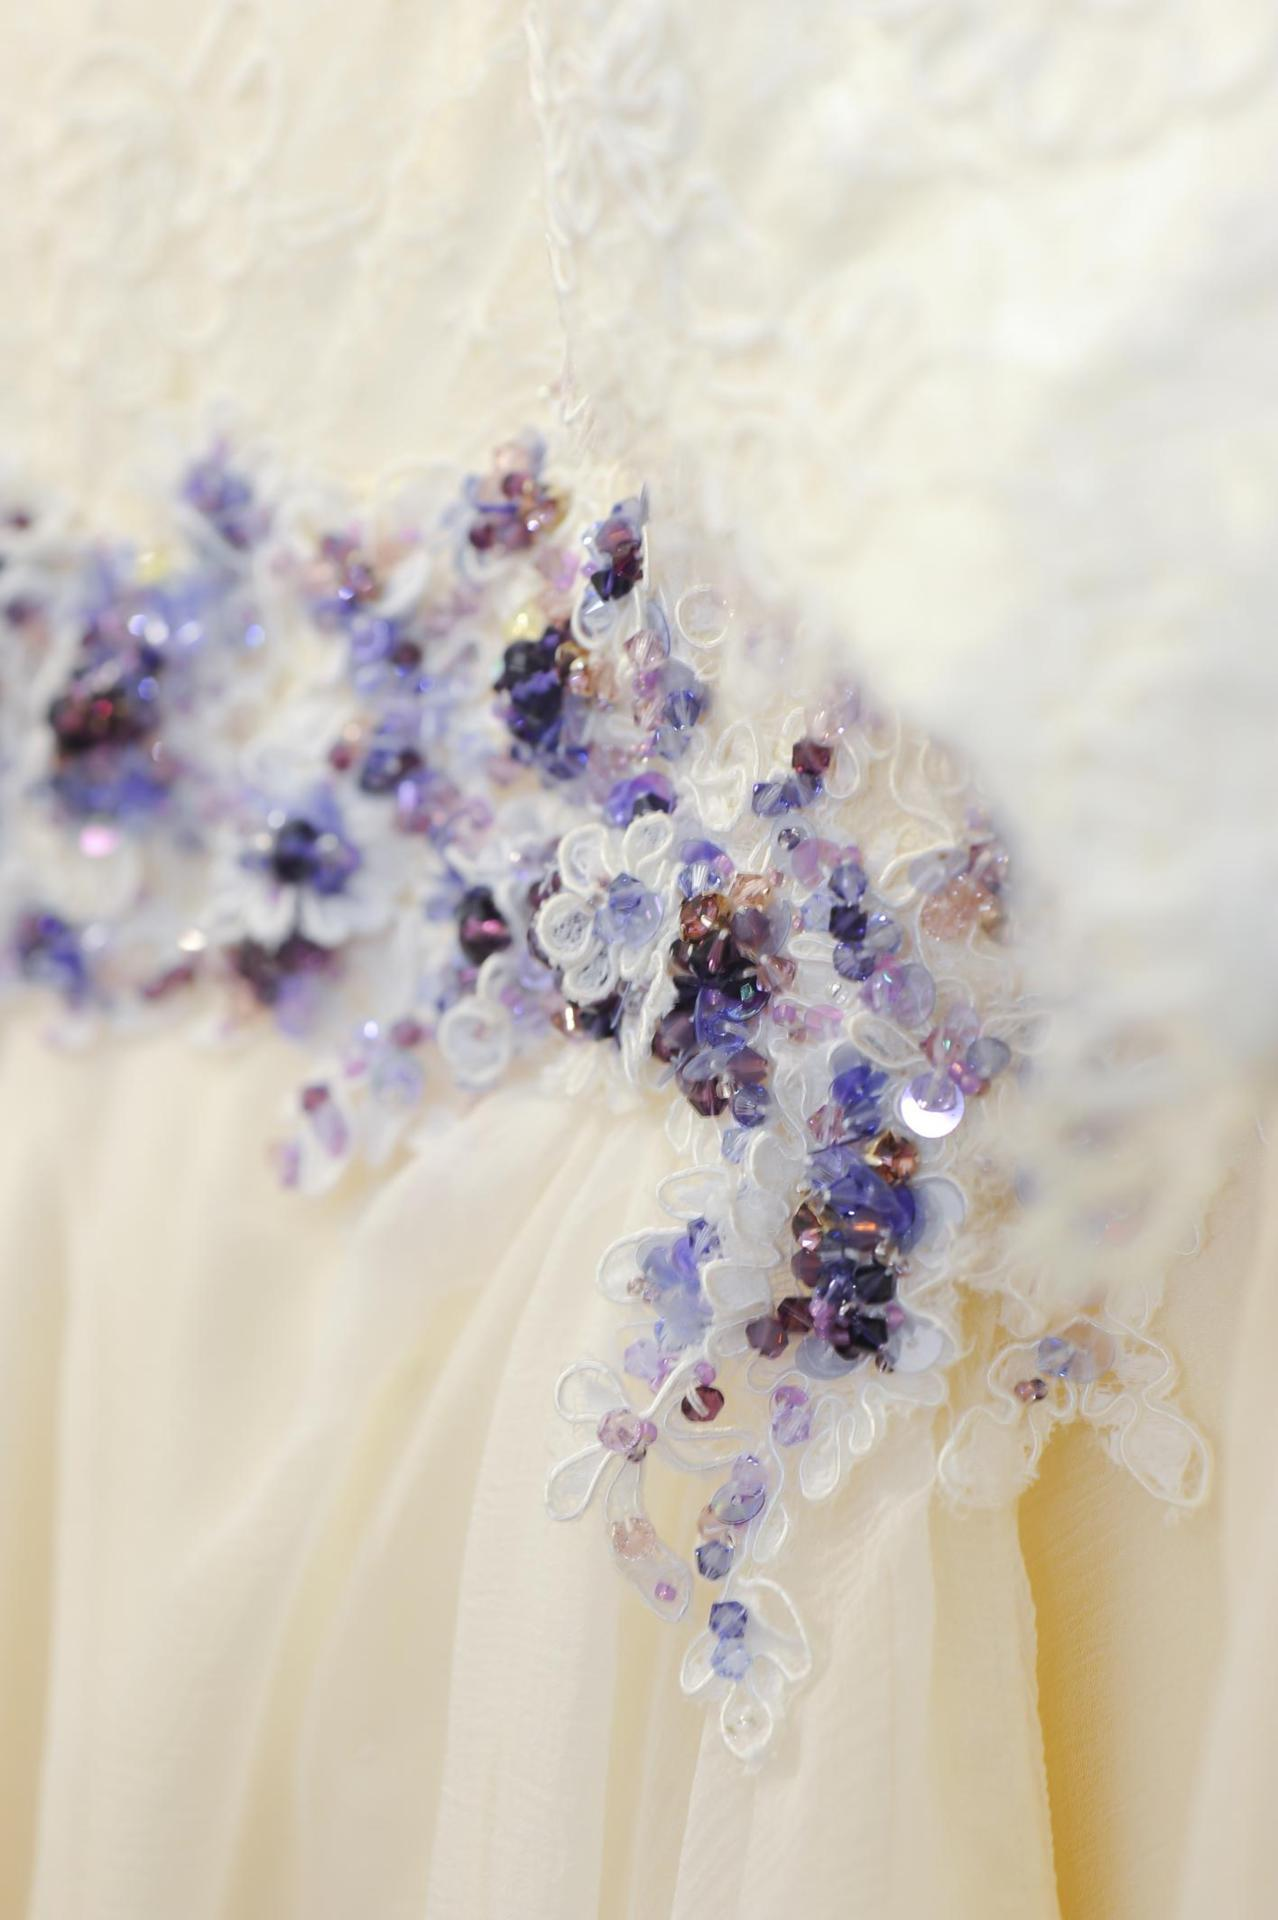 purple swarovski crystal wedding dress detail